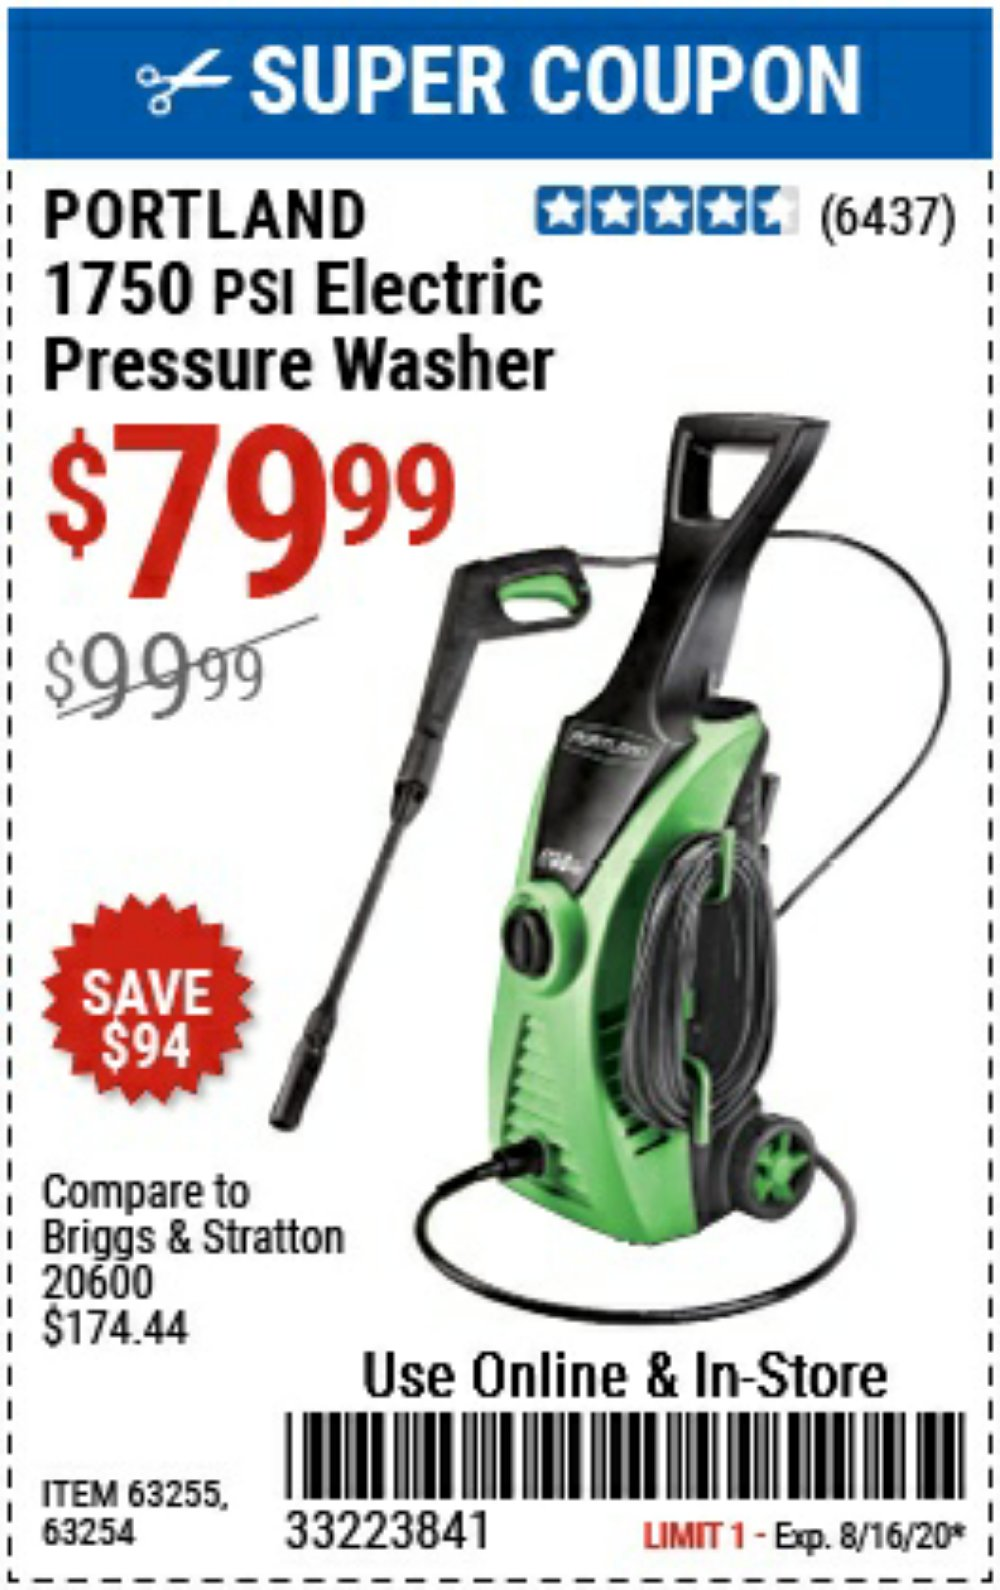 Harbor Freight Coupon, HF Coupons - power washer